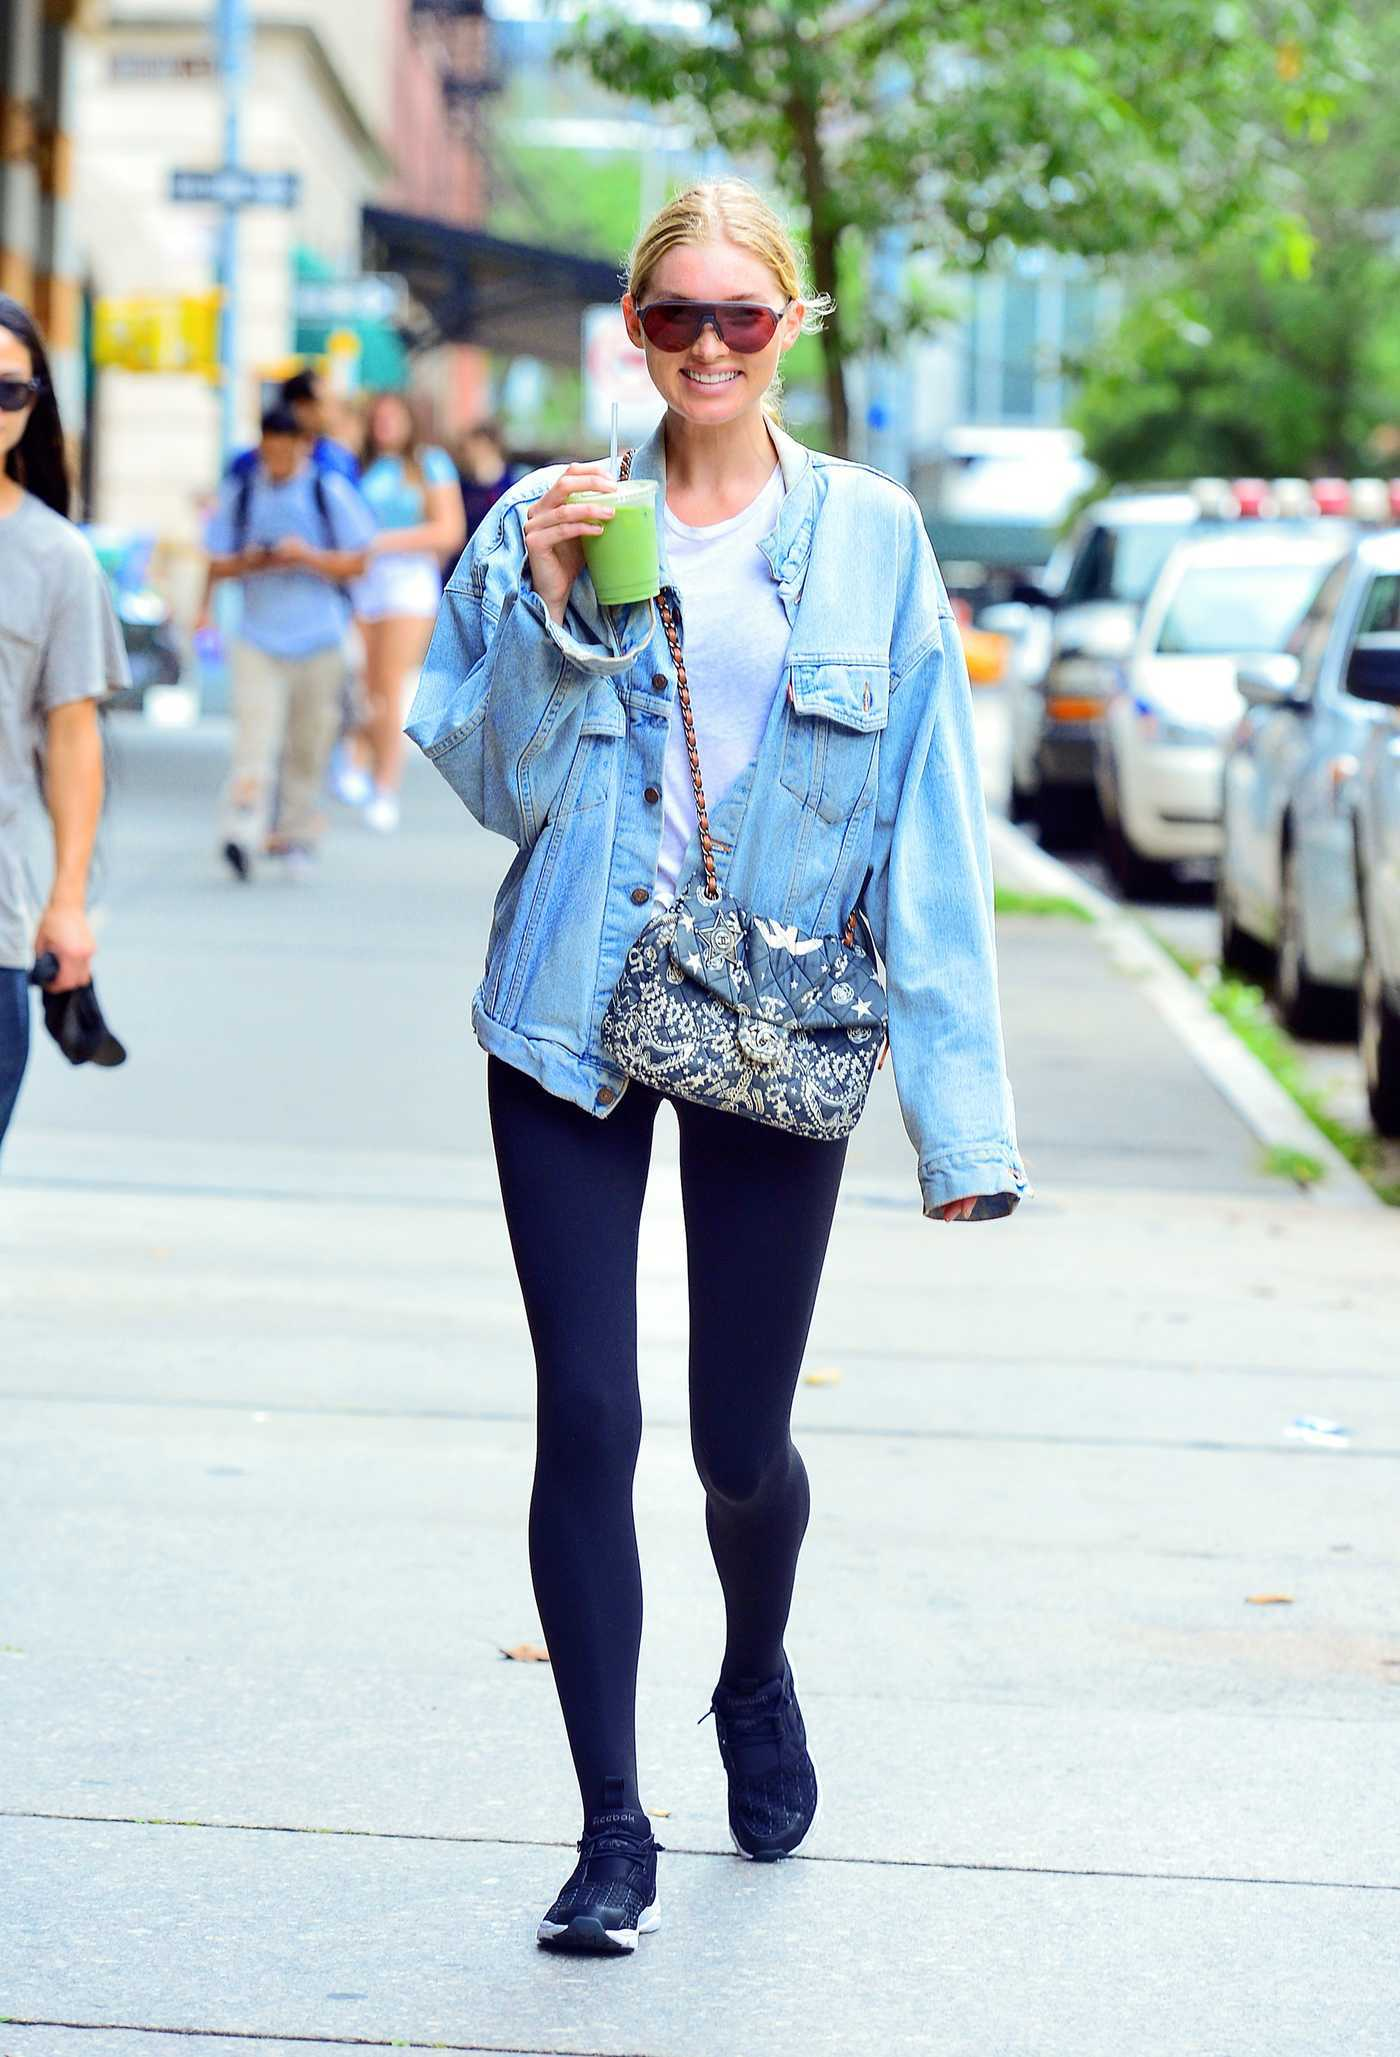 Elsa Hosk in a Blue Denim Jacket Drinks Her Coffee in New York City 07/25/2018